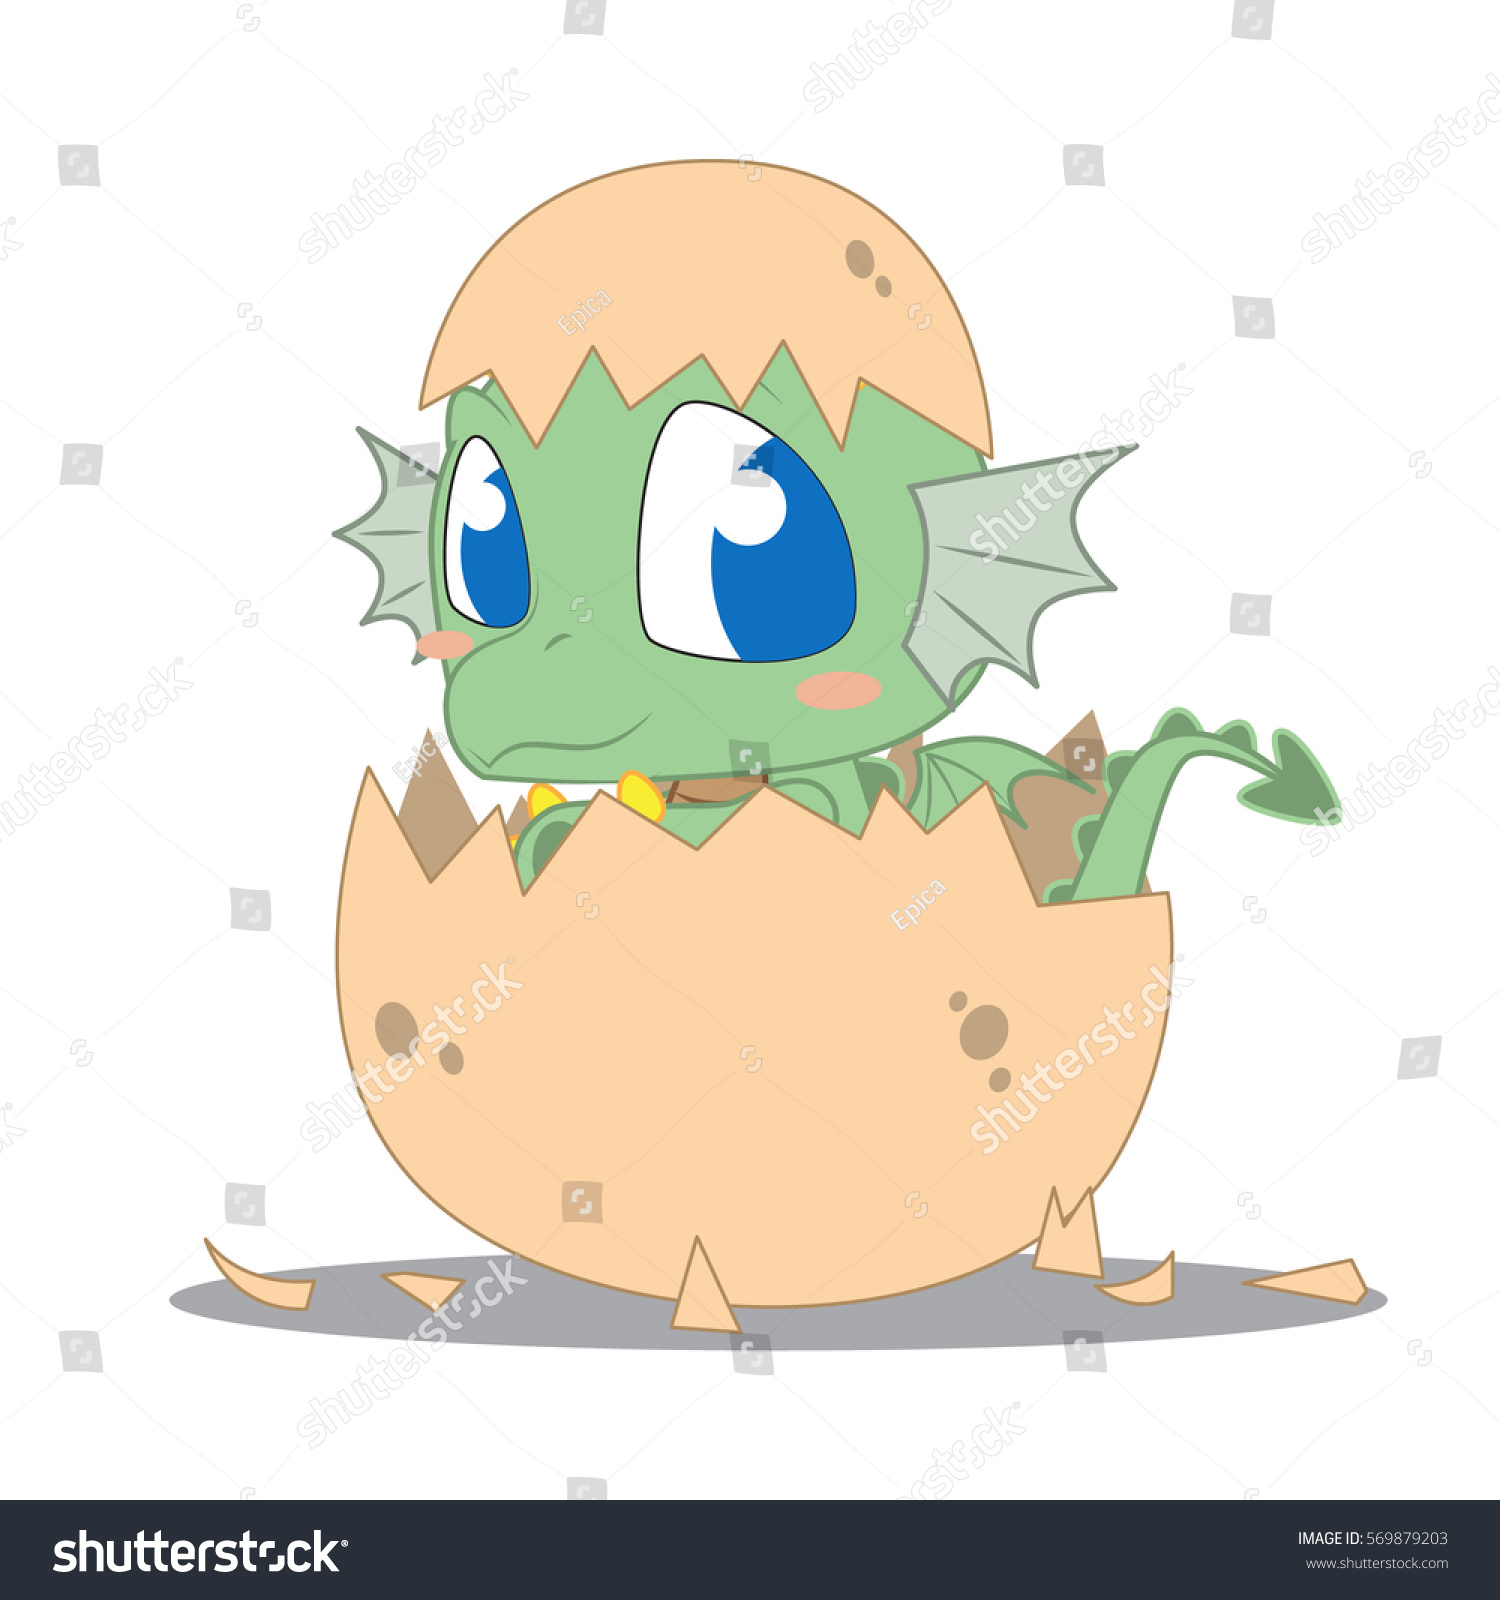 how to draw a baby dragon in a egg